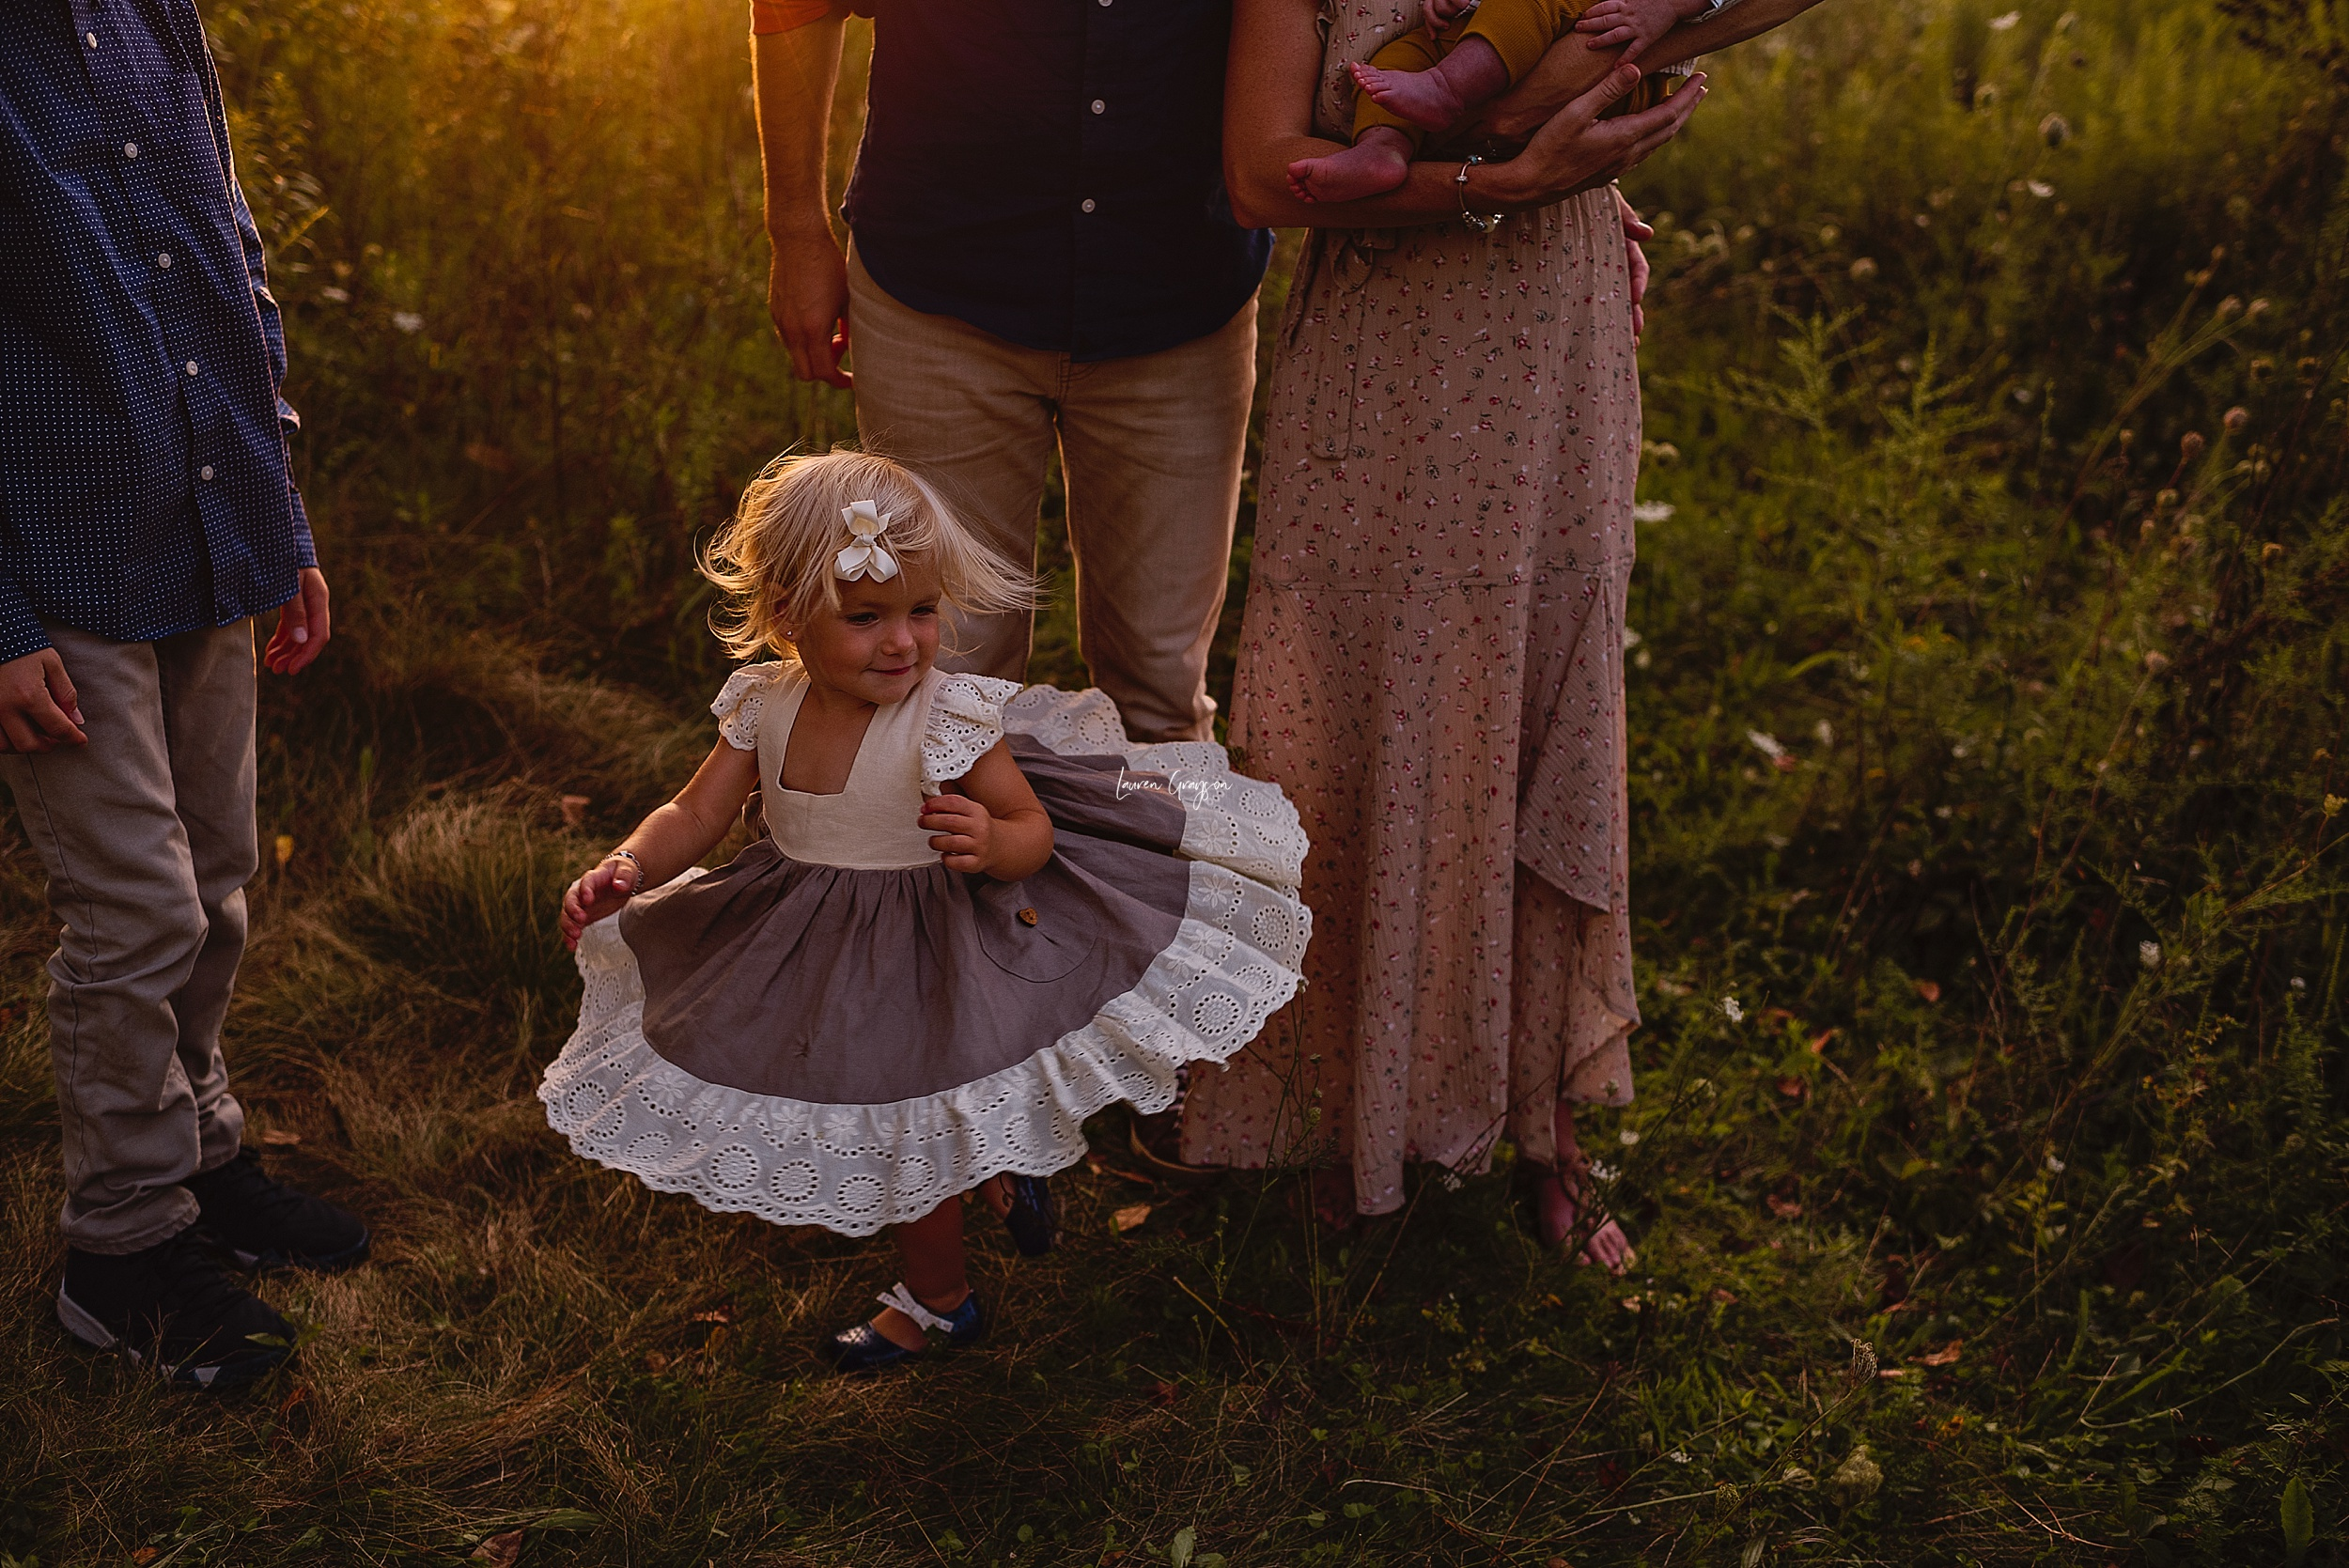 lauren-grayson-photography-cleveland-ohio-photographer-AKRON-family-photos-springfield-bog-cullin-first-birthday_0855.jpg